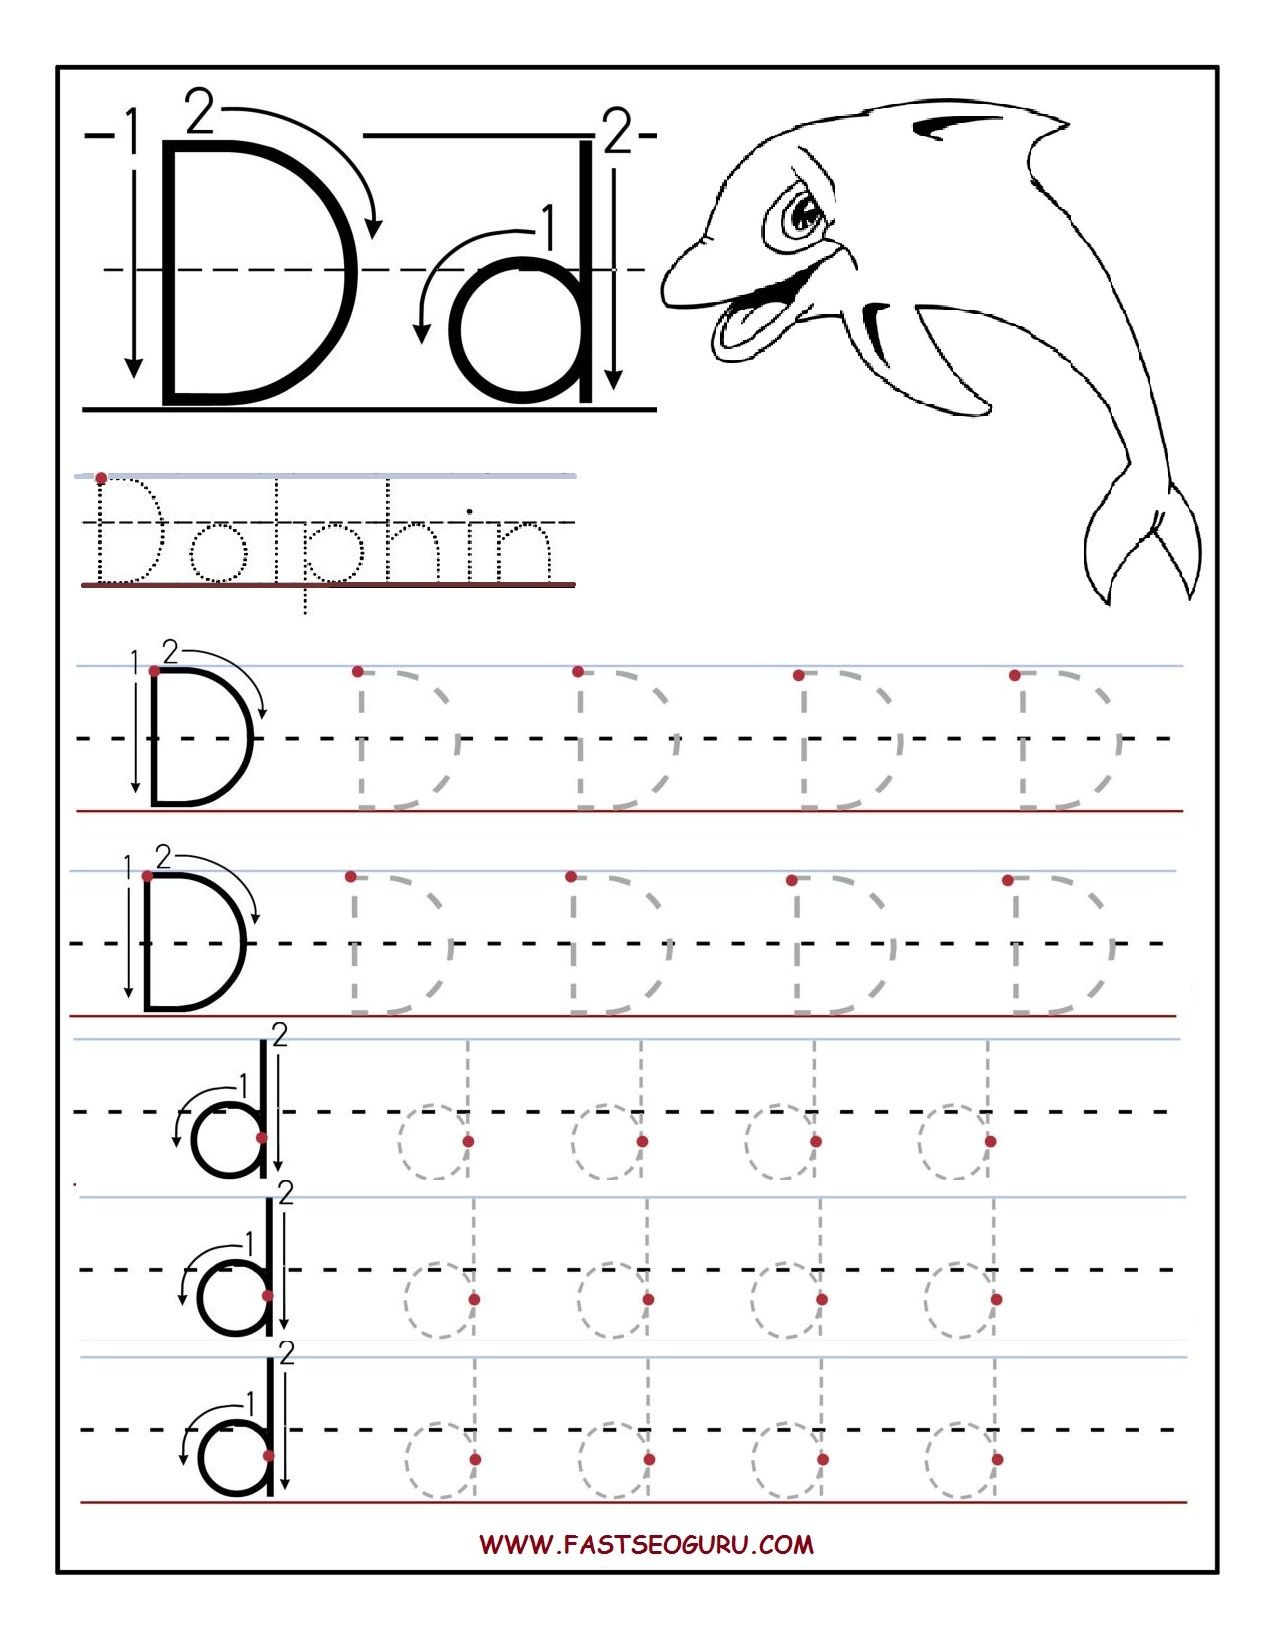 worksheets for preschoolers – Letter Tracing Worksheets for Kindergarten